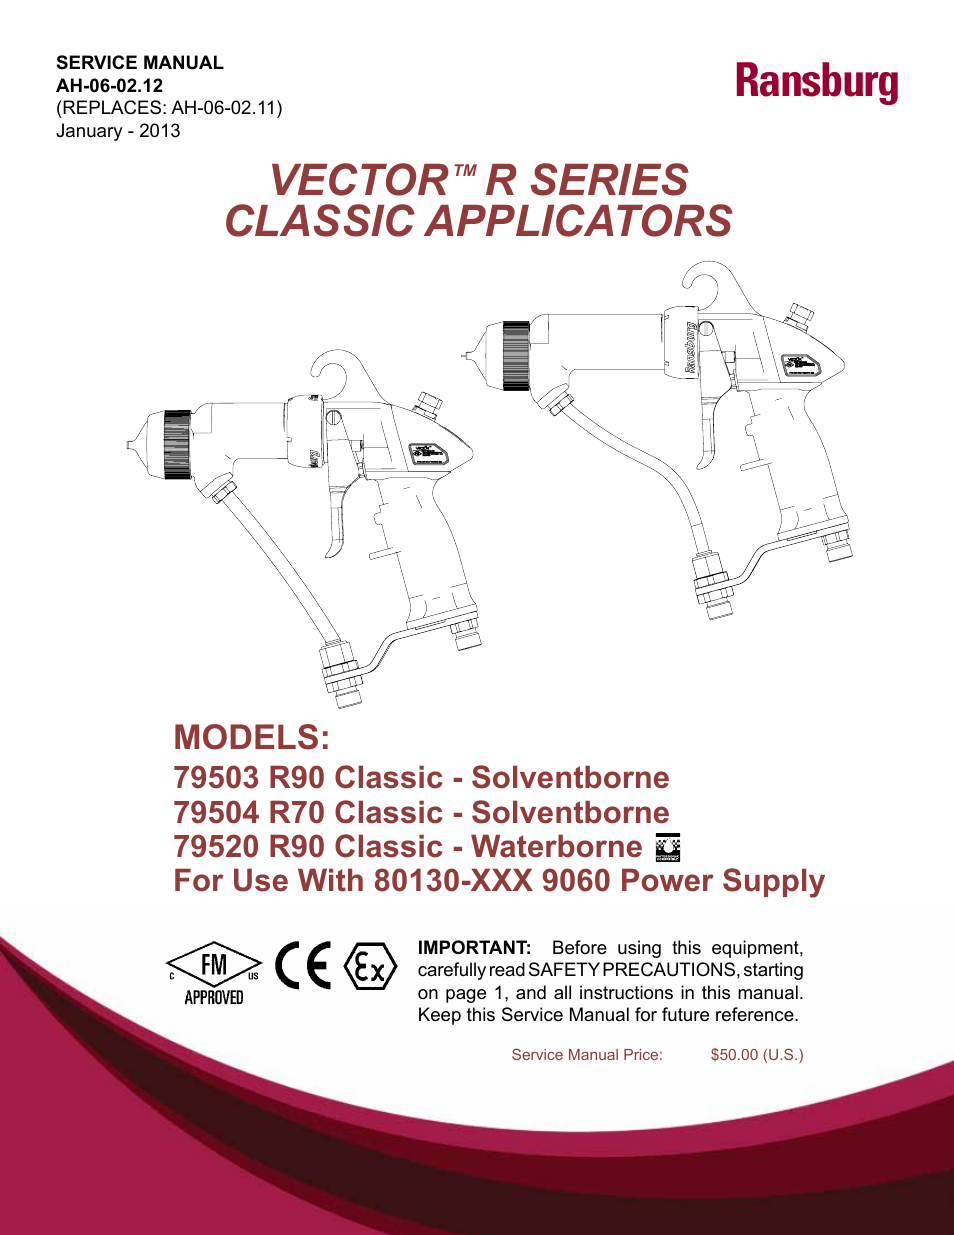 Ransburg vector r series classic 79520 r90 waterborne user for Vector canape user manual